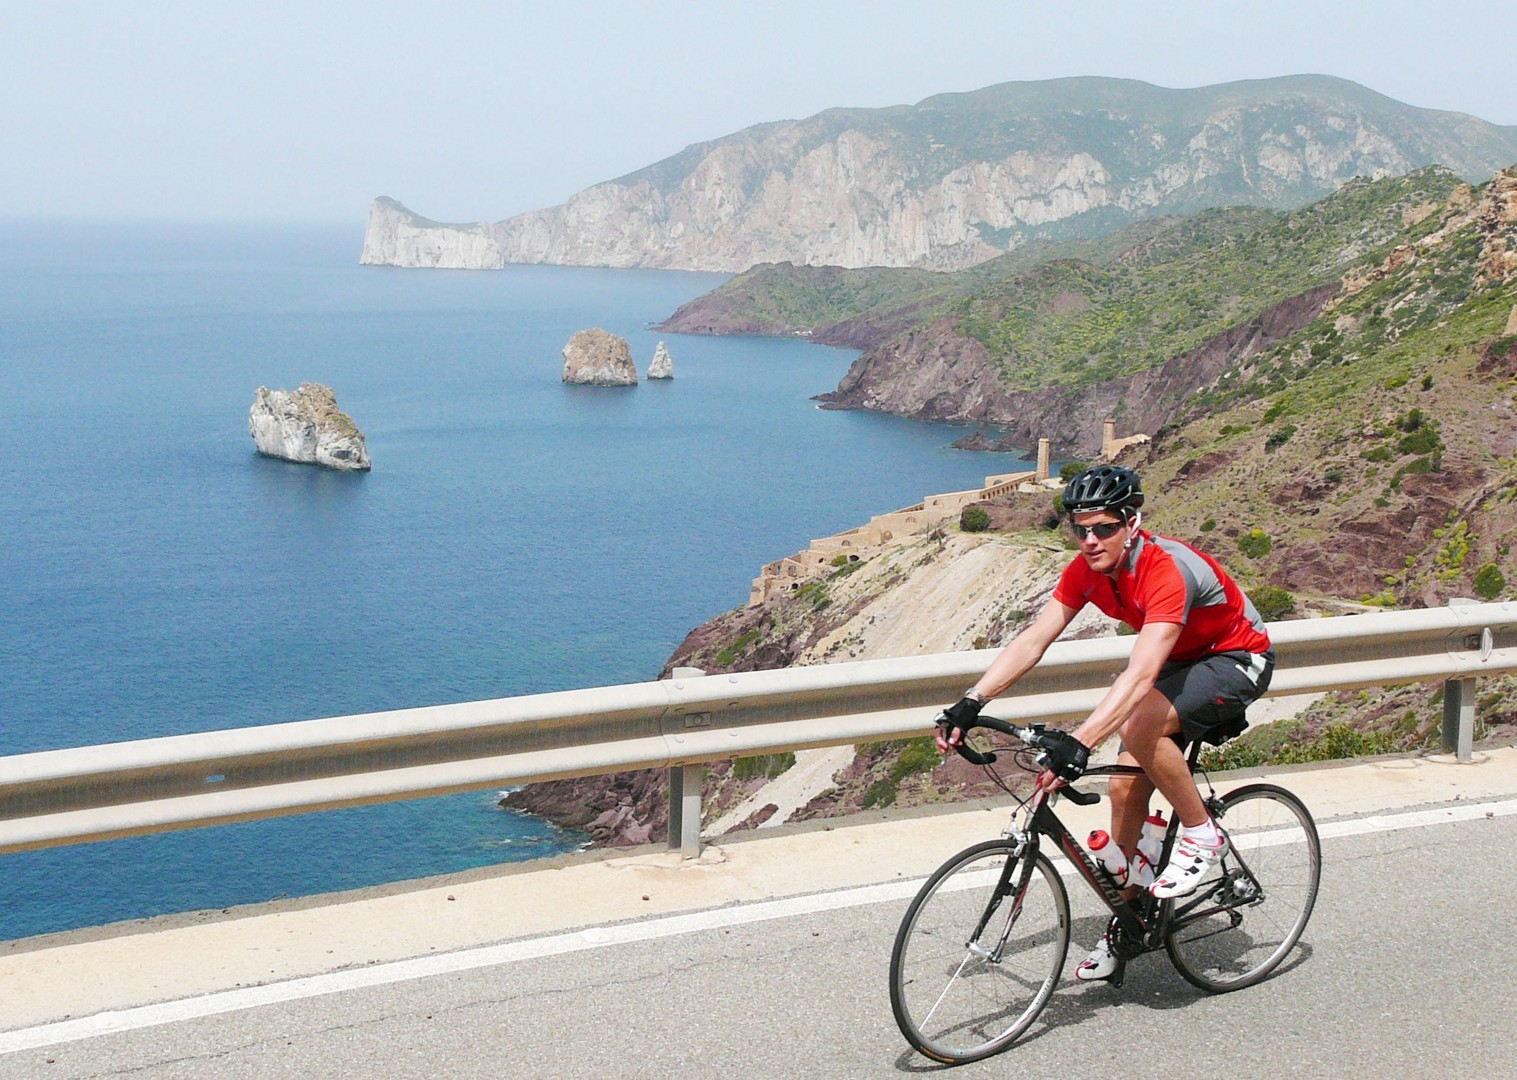 Sardinia-Coastal-Explorer-Self-Guided-Road-Cycling-Holiday-coastal-riding.JPG - Italy - Sardinia - Coastal Explorer - Self Guided Road Cycling Holiday - Road Cycling